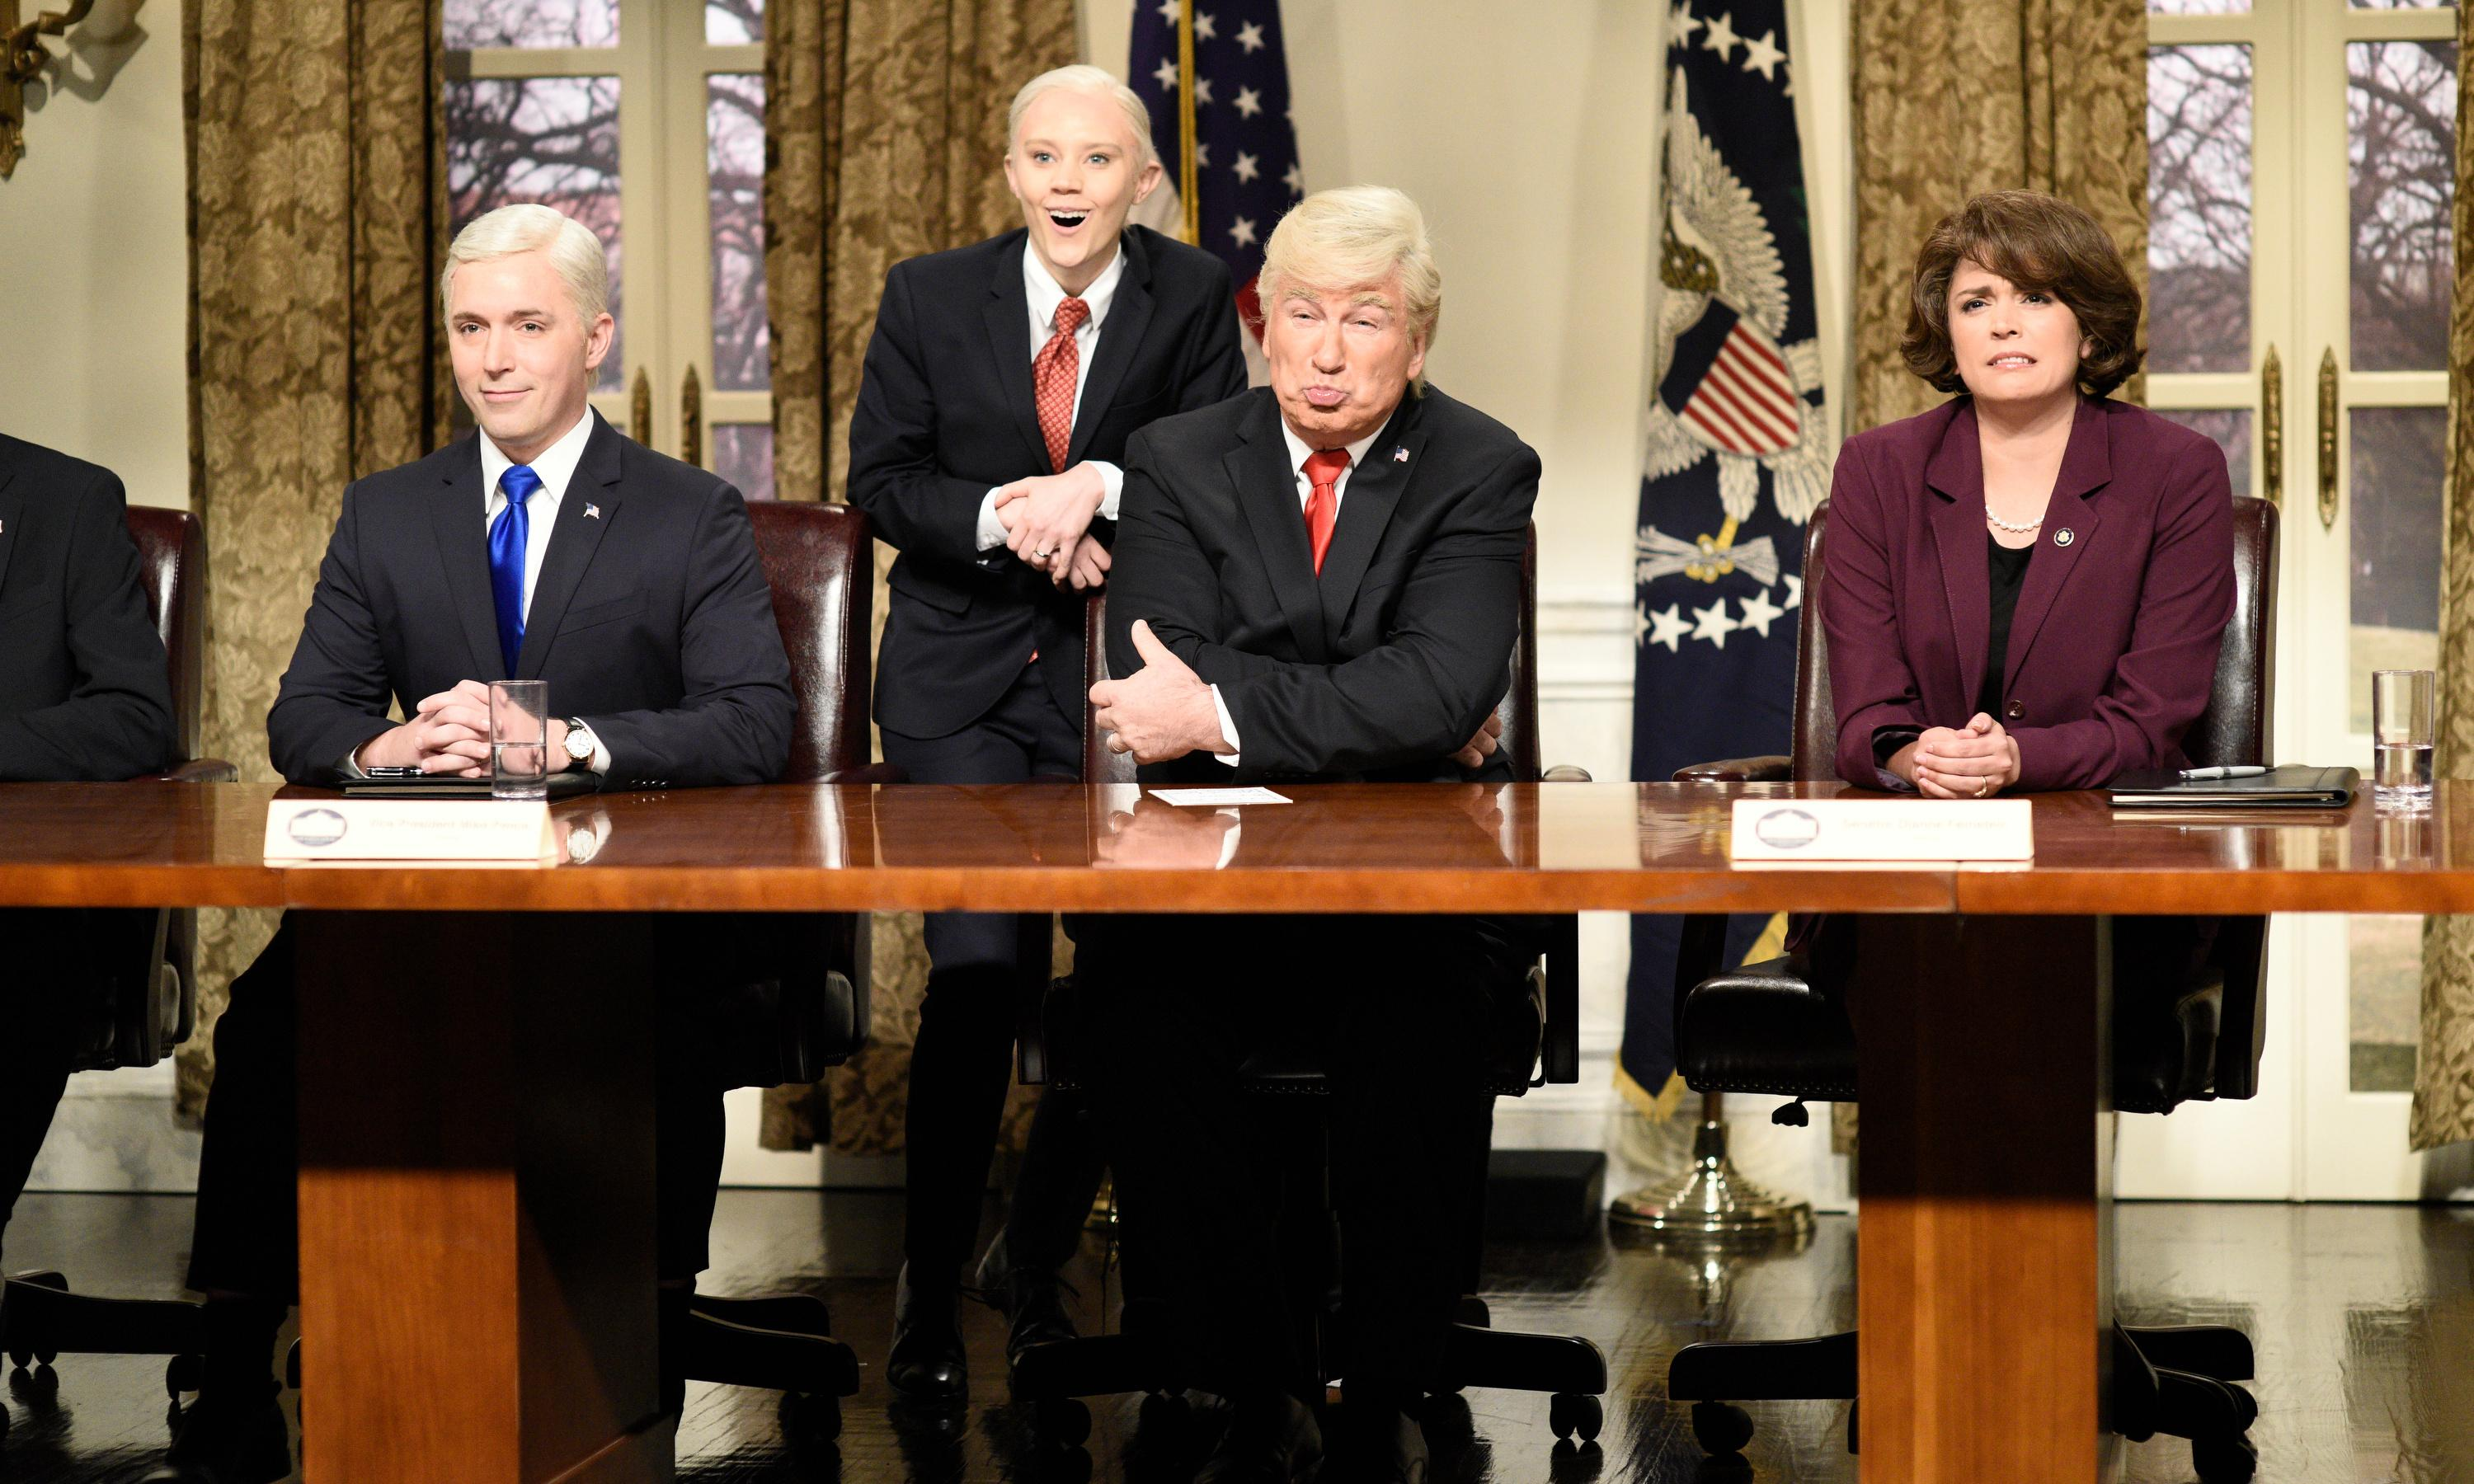 Less Trump, more weirdness: how Saturday Night Live can fix itself